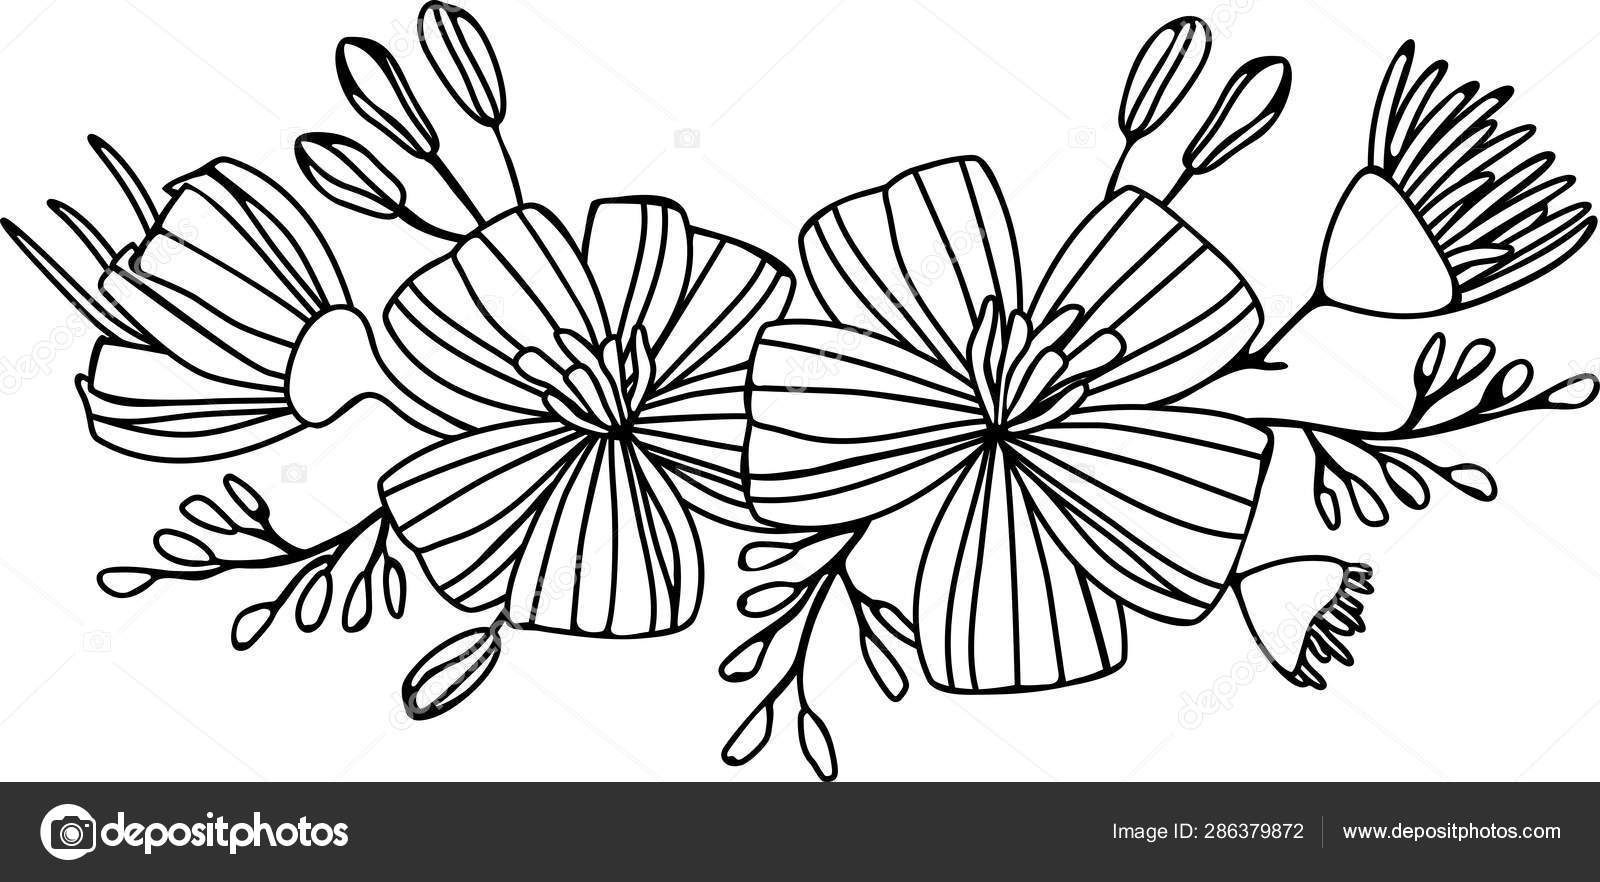 Bouquet De Marguerites Illustration Vectorielle Dessin